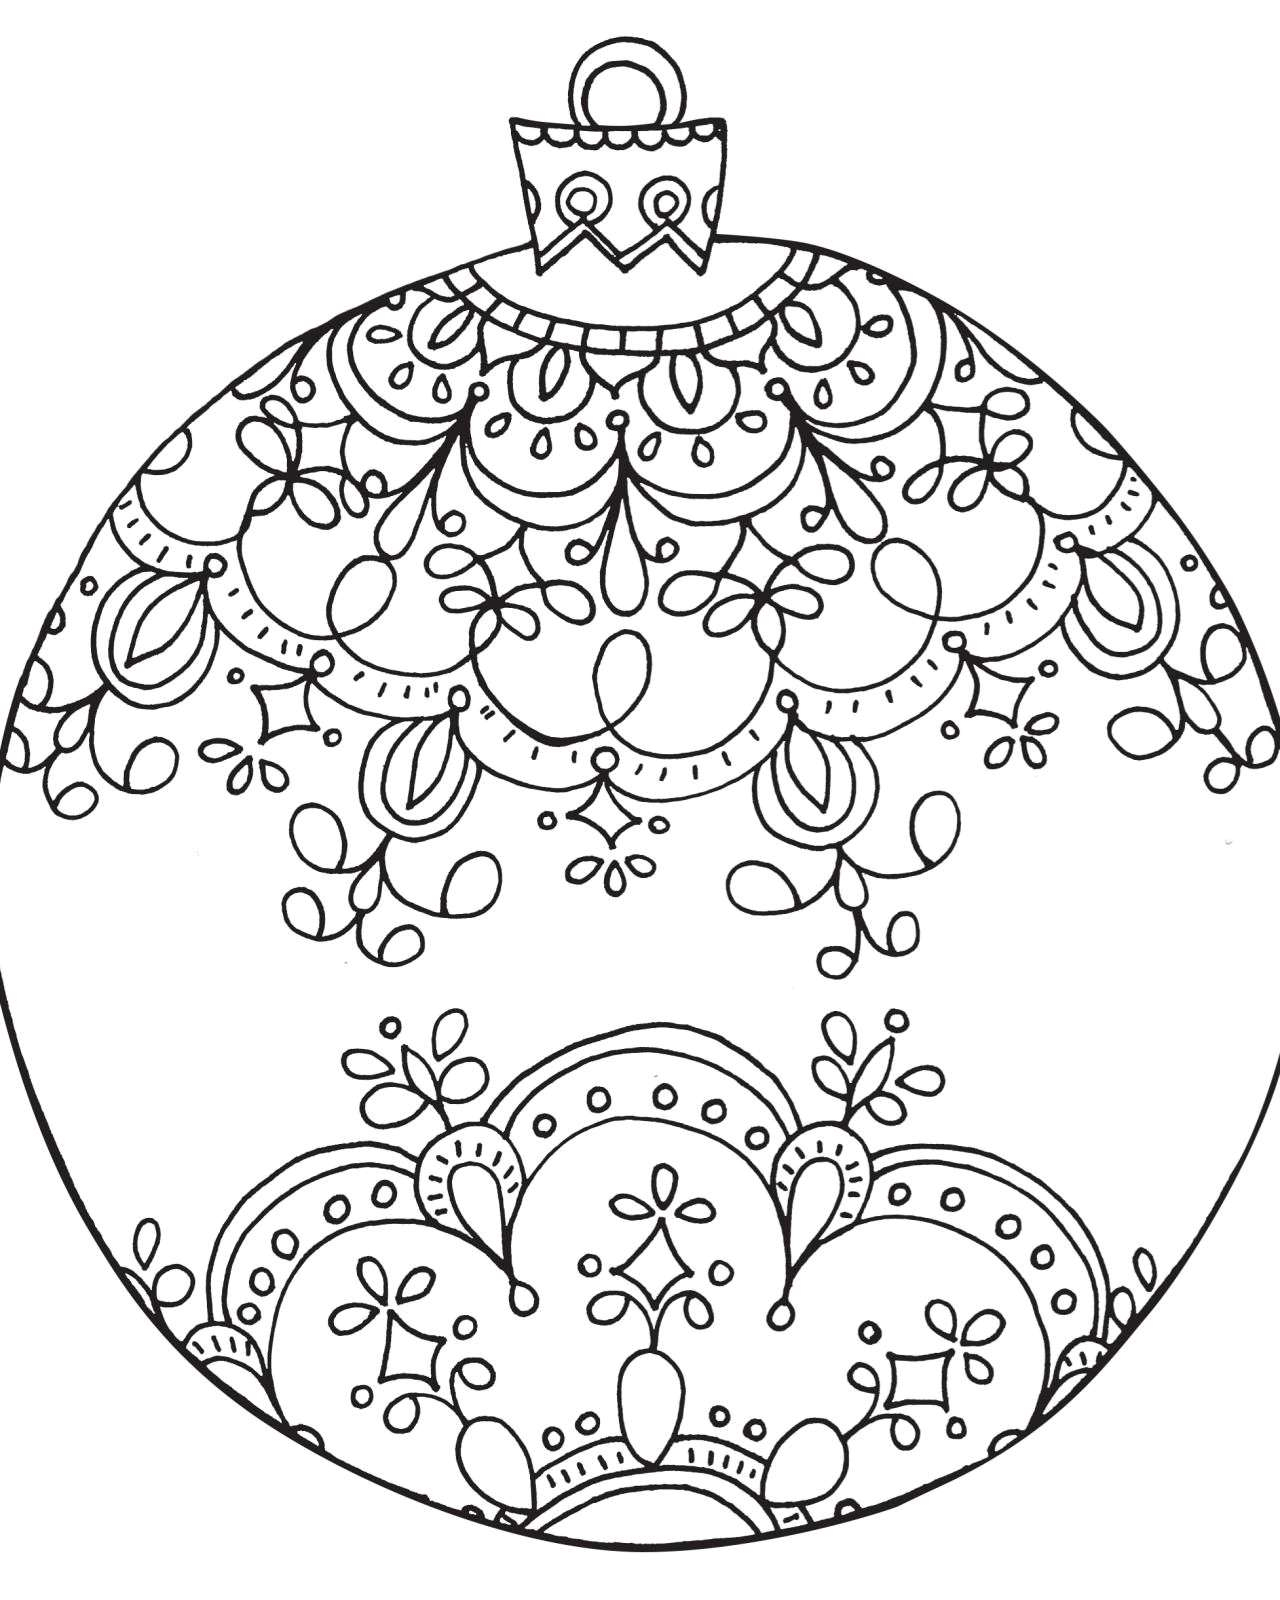 cool coloring pages to print Collection-Autumn Coloring Pages for Adults Coolest Printable Fall Coloring Pages Fresh Cool Od Dog Coloring Pages 16-s